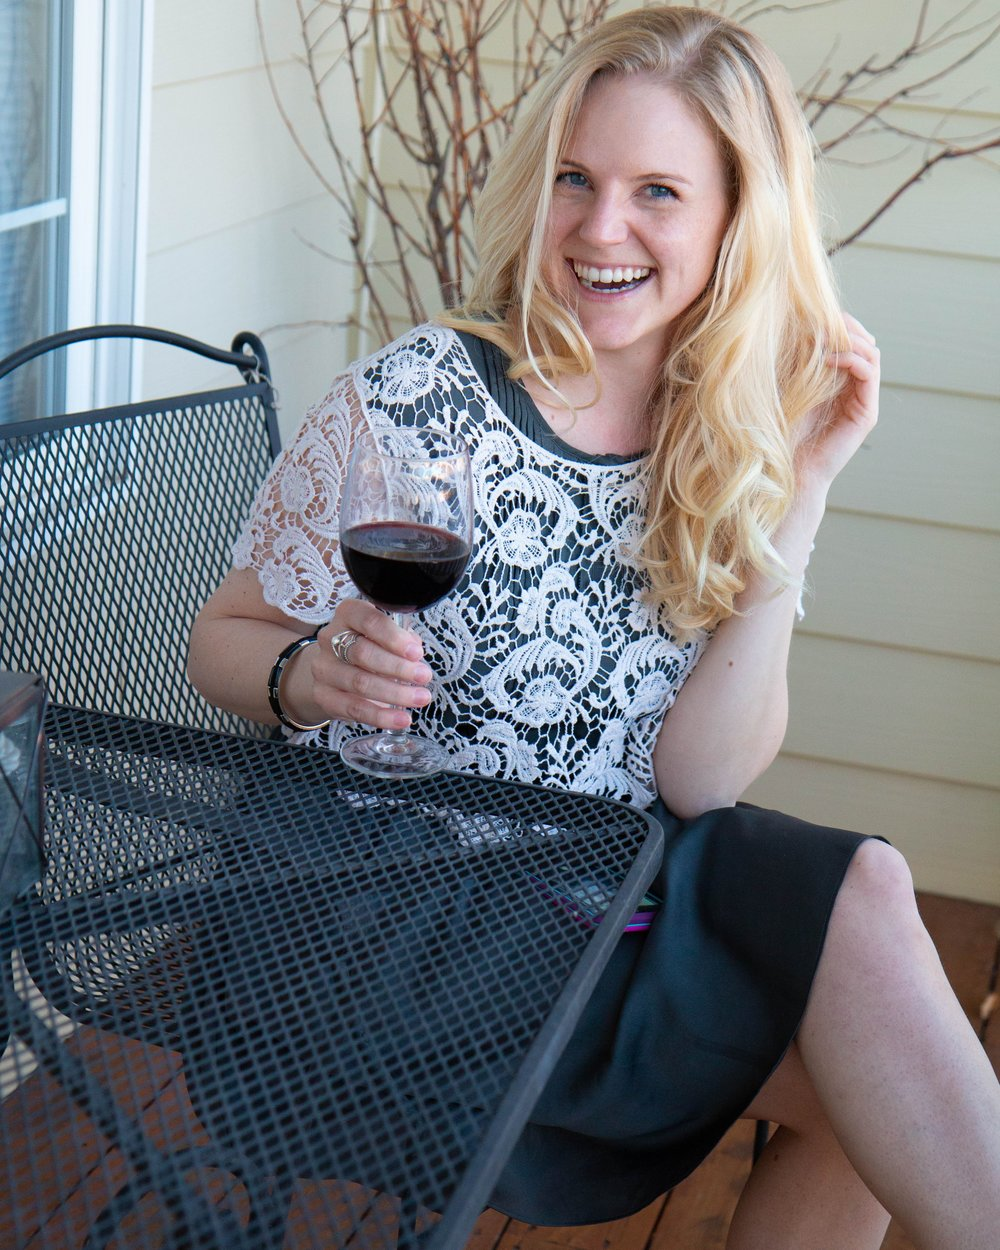 Adorable, inspiring lifestyle and travel blogger Bri Sul! I love her style